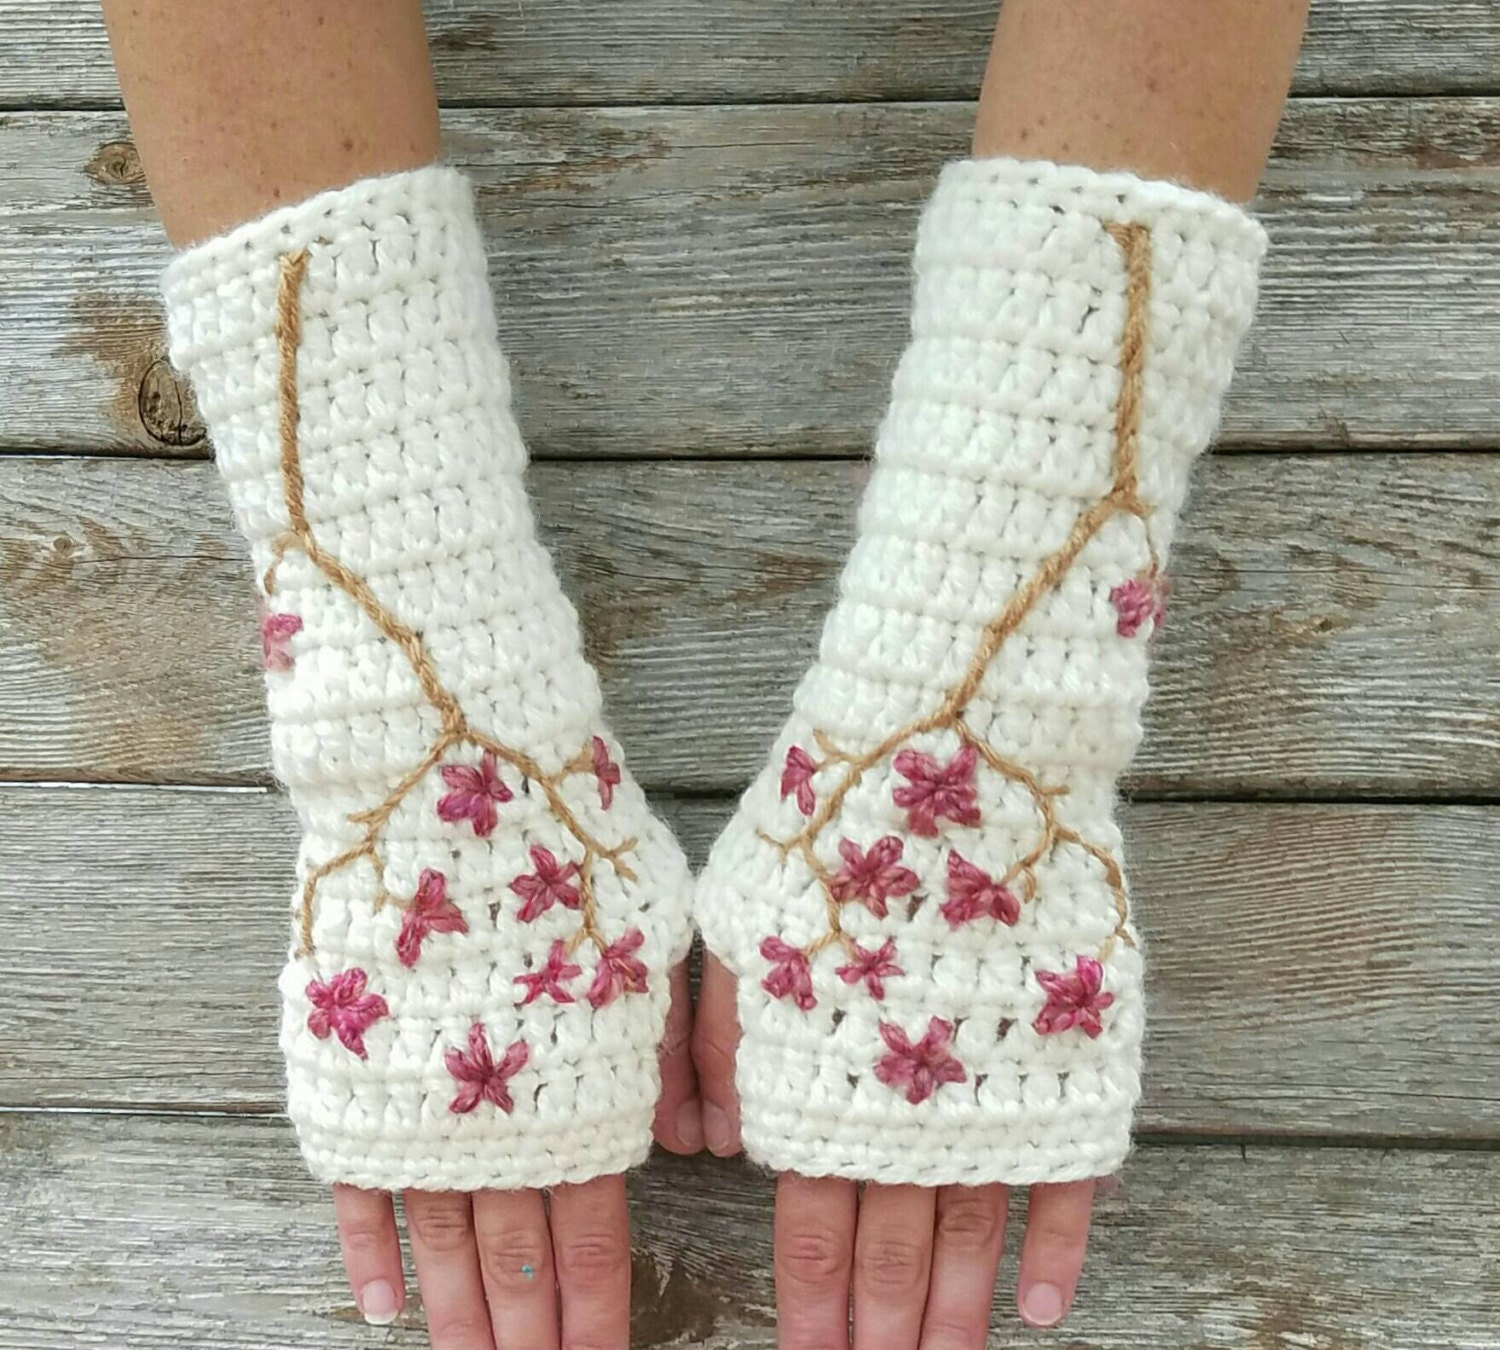 Driving texting gloves - Cherry Blossom Fingerless Gloves Wool Armwarmers Wool Gloves Womens Arm Warmers Sakura Cream Pink Texting Gloves Made To Order